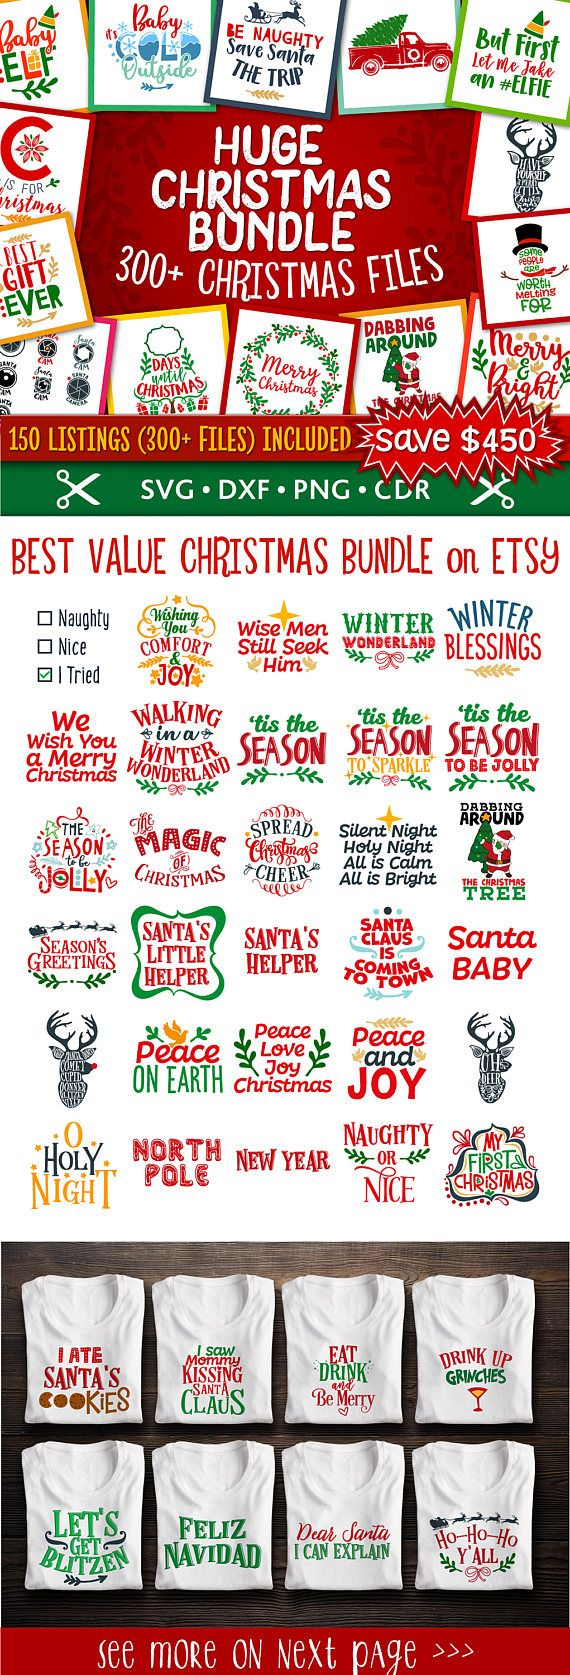 Christmas Svg Christmas Bundle Svg Christmas Svg Bundle Christmas Files Bundle Cut Files! INSTANT DOWNLOAD // COMMERCIAL USE // 100% COMPATIBLE Congratulations! You just found the BEST value Christmas Bundle on Etsy! This bundle contains: 313 files in SVG format 313 files in DXF